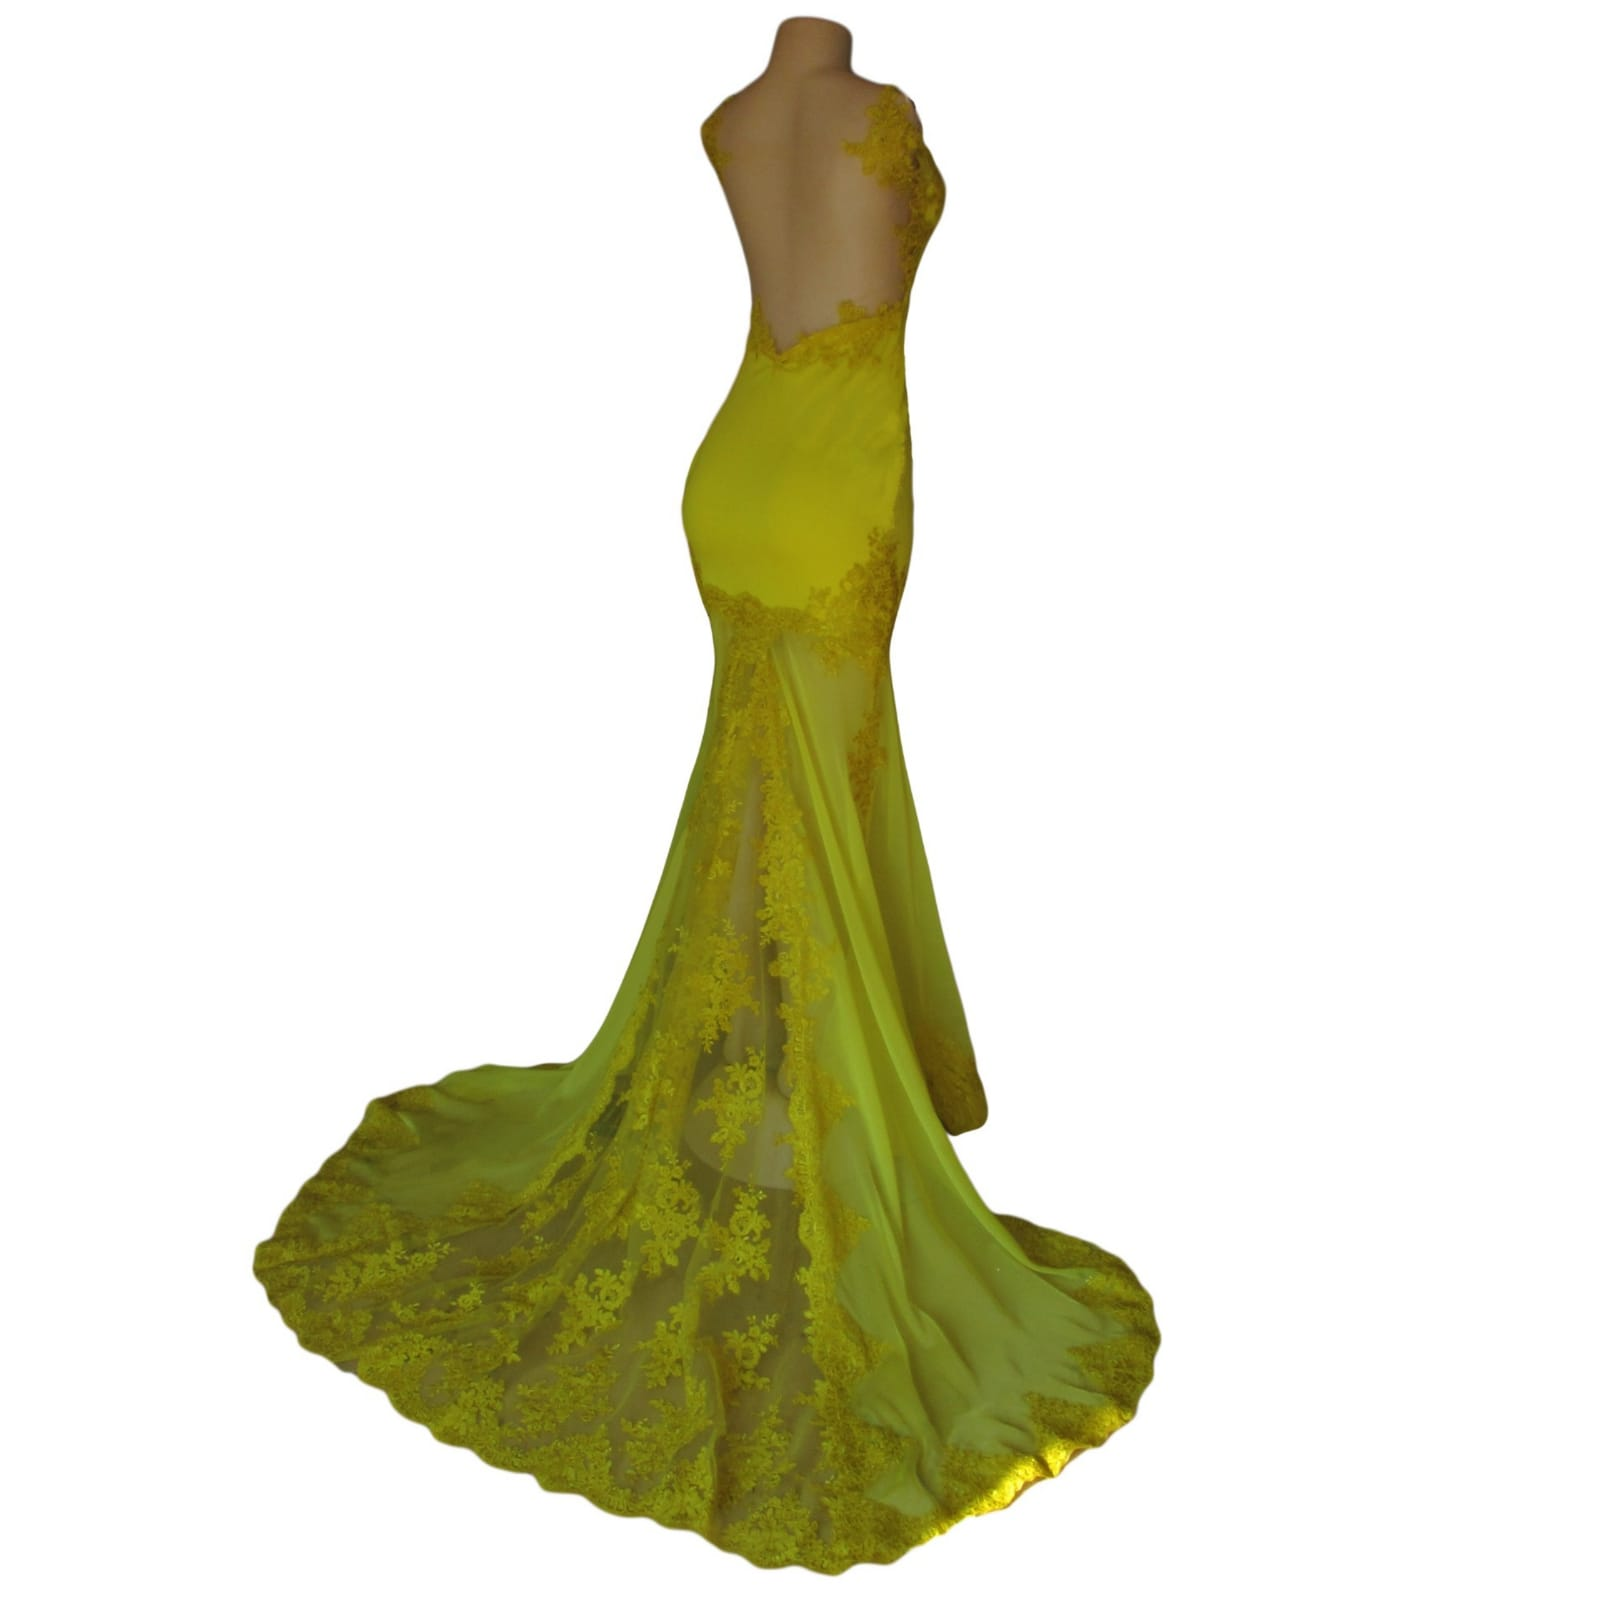 Canary yellow lace soft mermaid prom dress 4 canary yellow, lace, soft mermaid prom dance dress with sheer legs, detailed with lace. With an illusion open back.